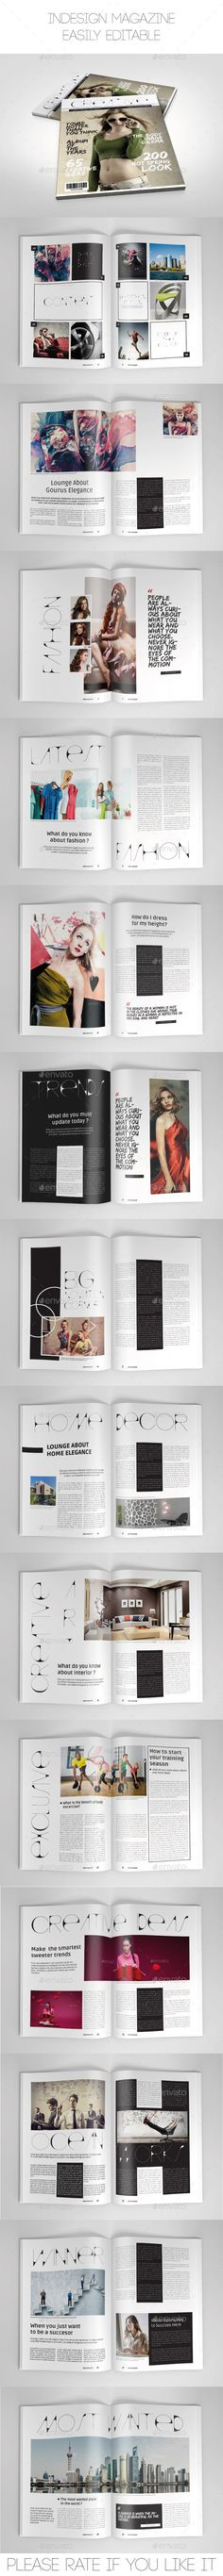 Multipurpose Magazine Template by batebata Multipurpose Magazine TemplateThis is a Multipurpose professional and clean InDesign magazine template that canbe used for any typ